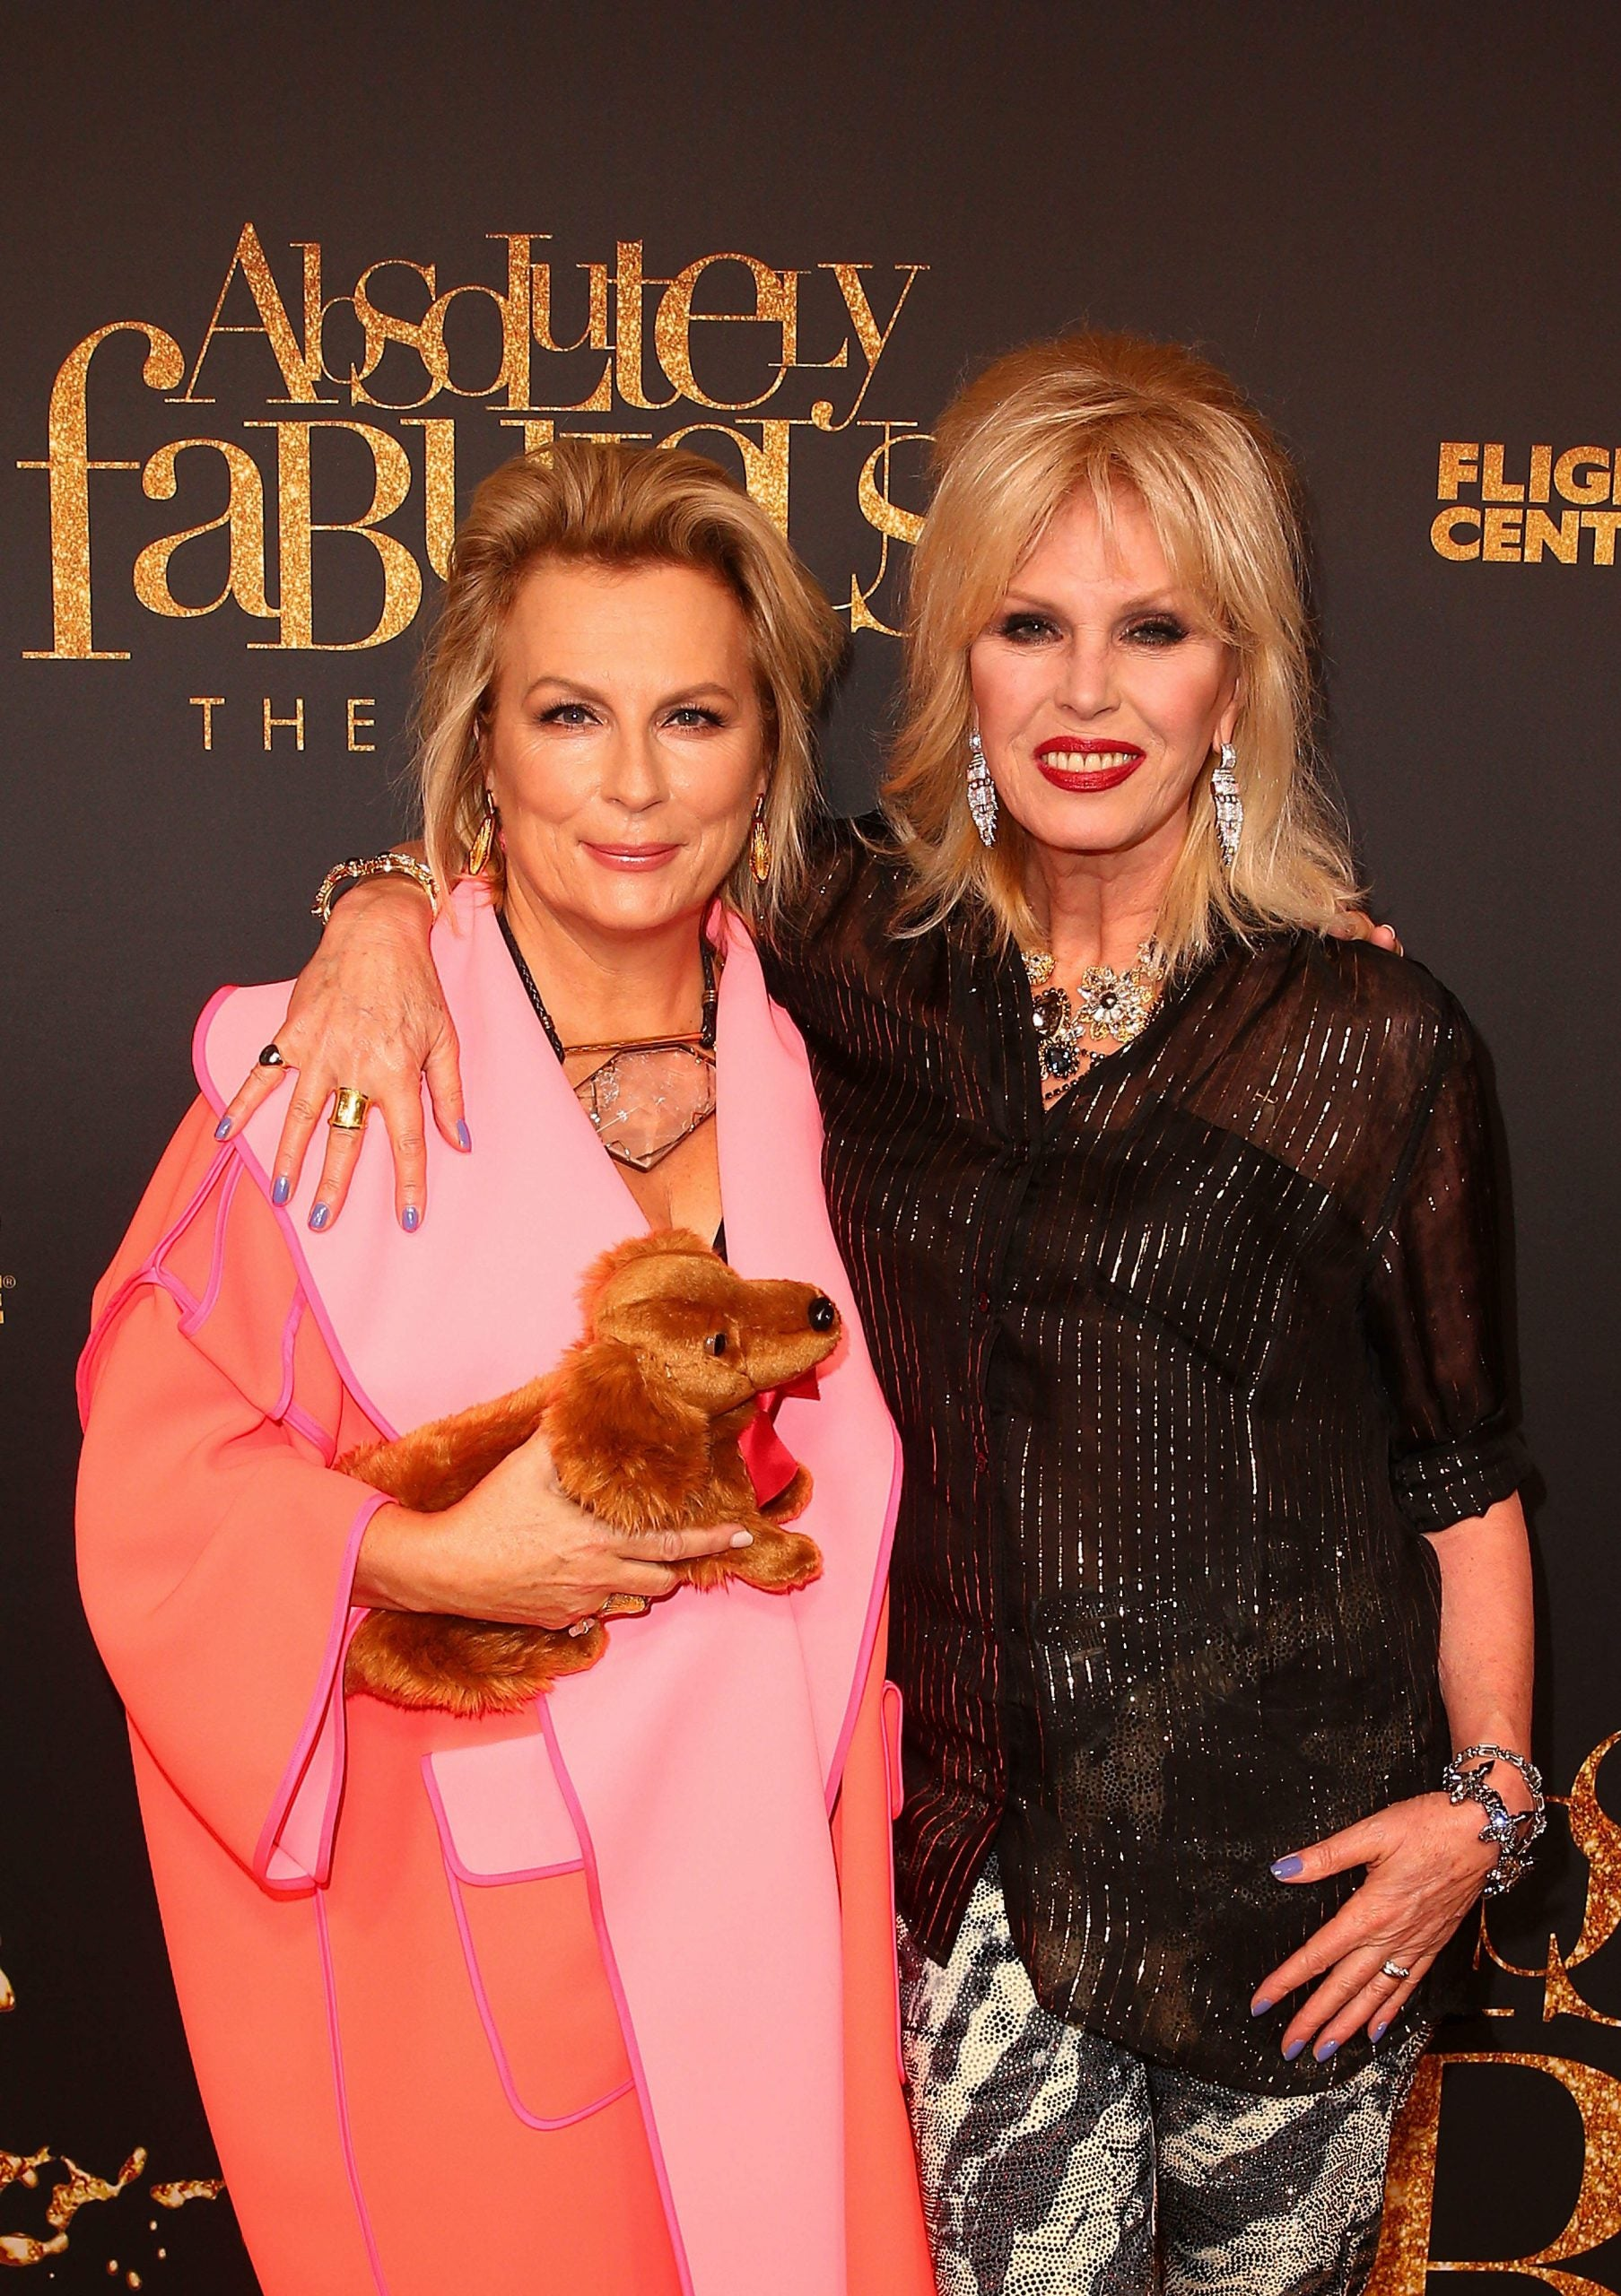 Absolutely Fabulous will show future generations how fun life was before Brexit